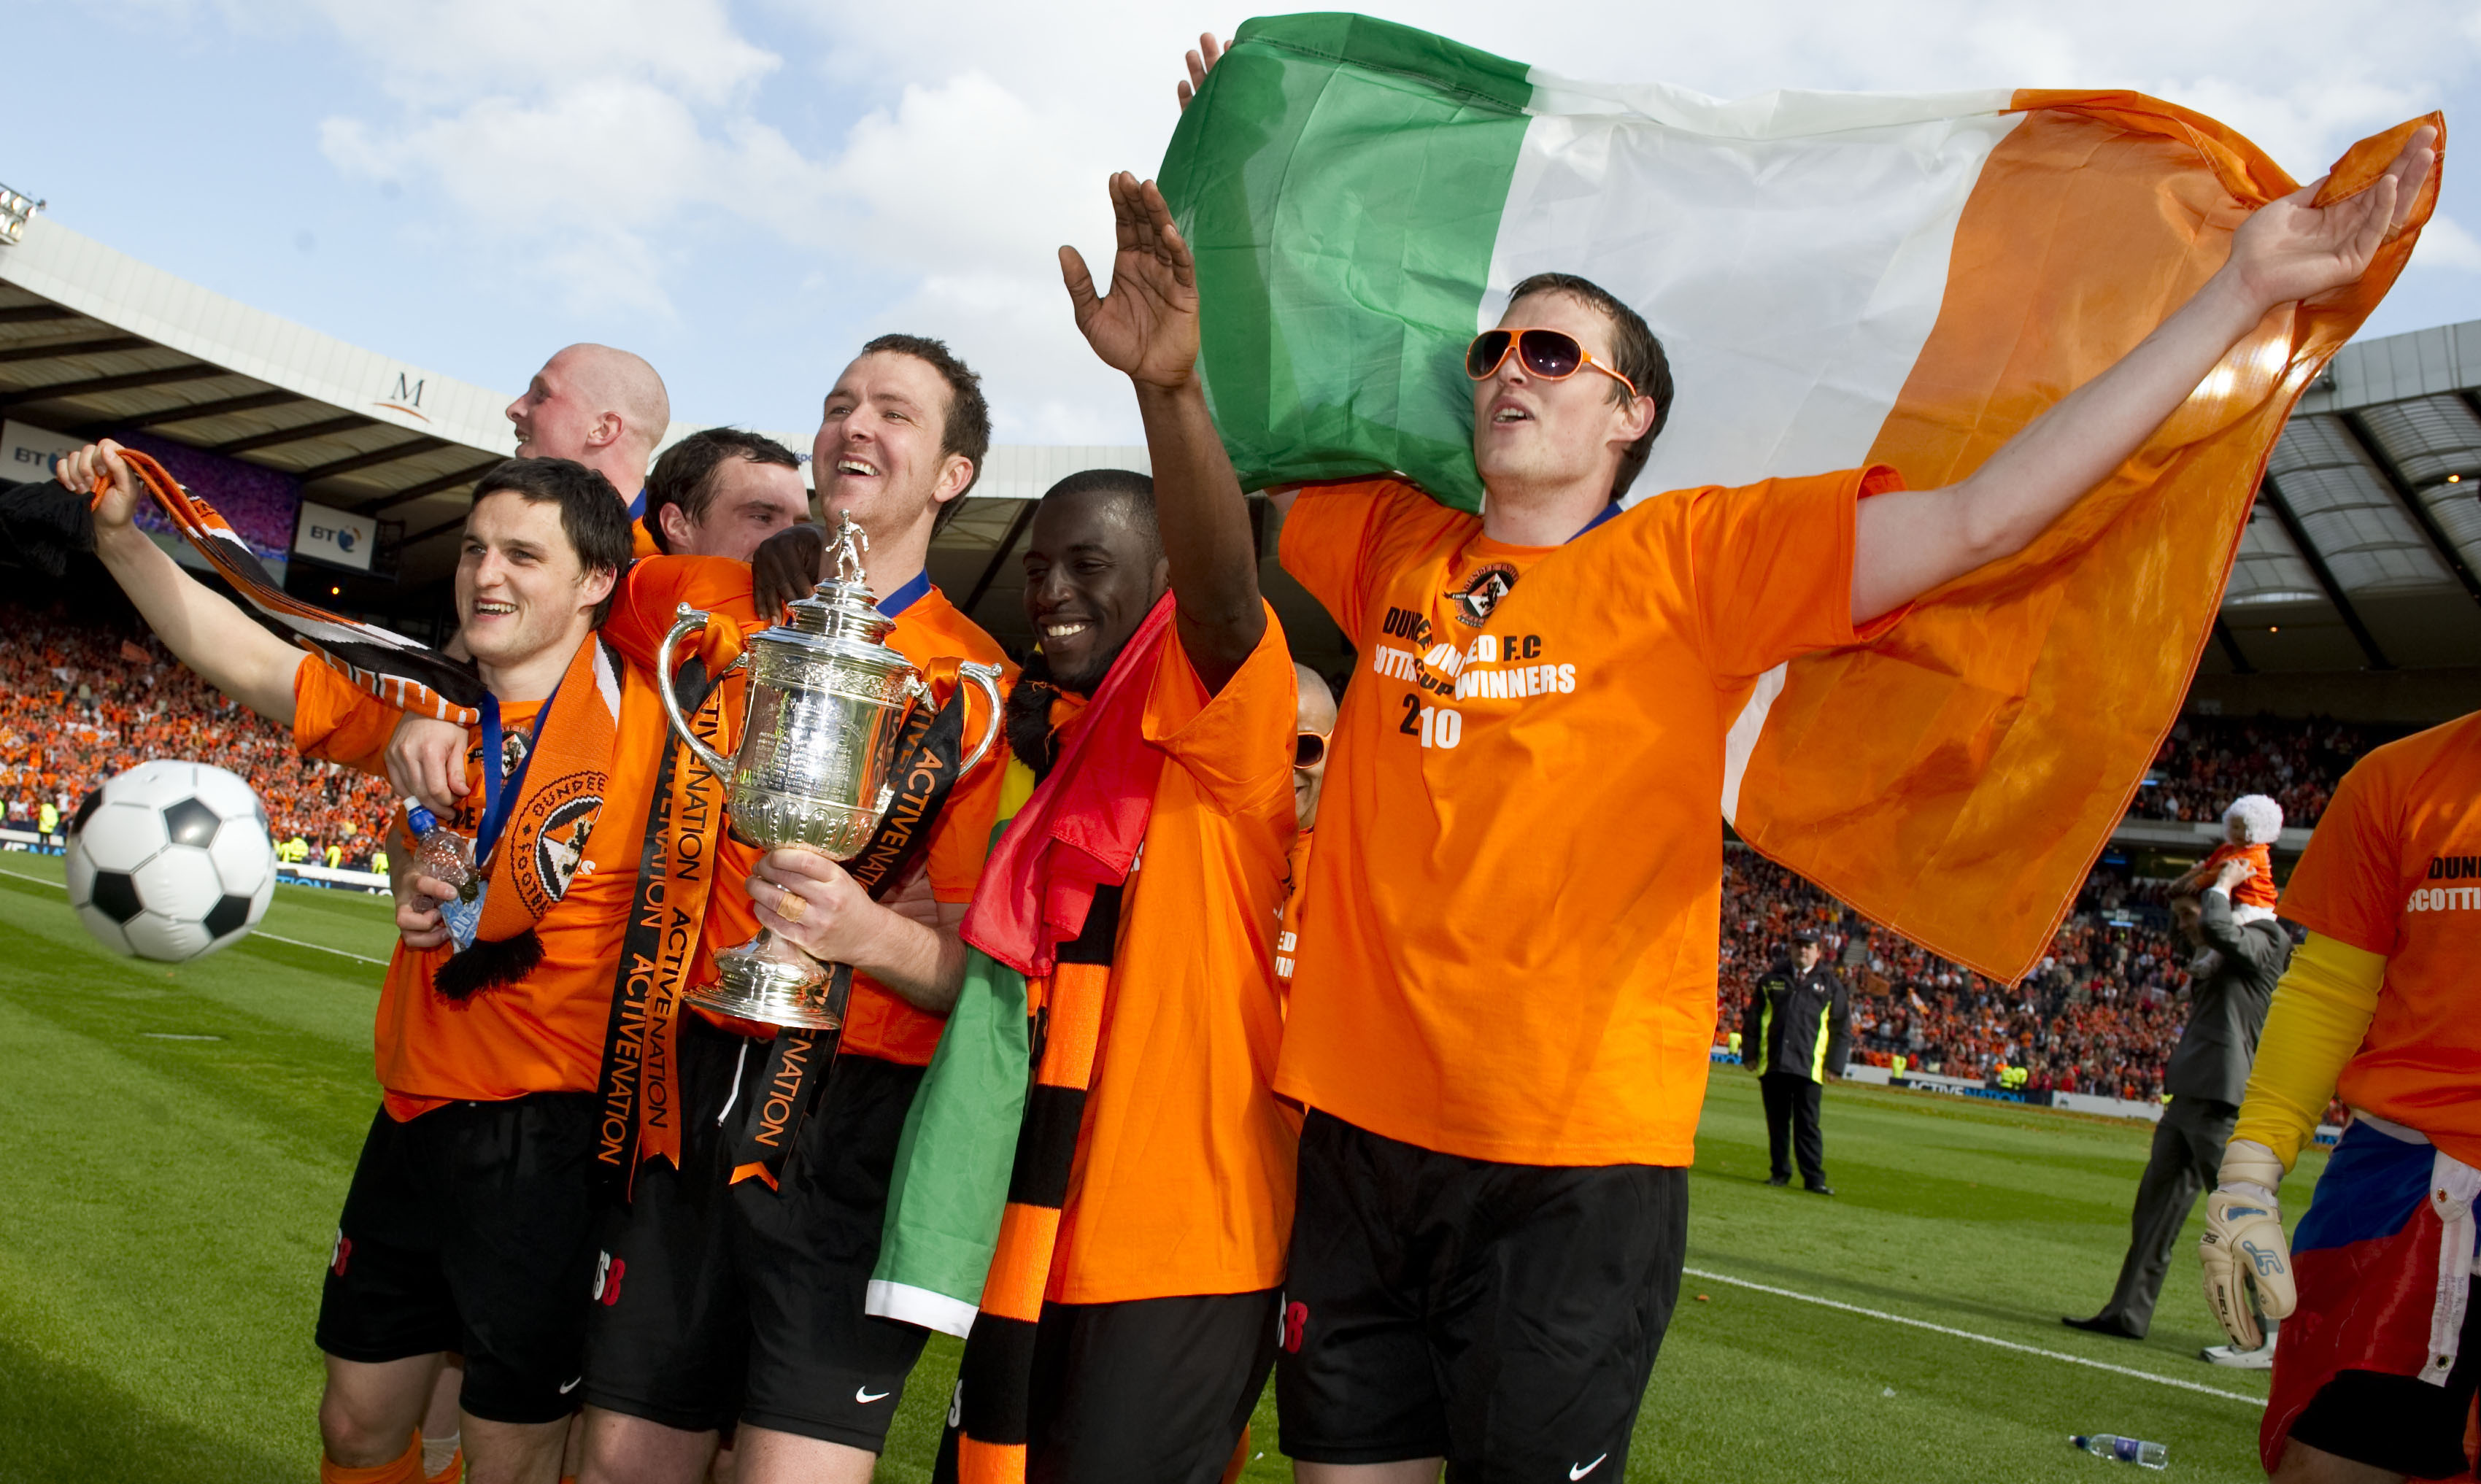 The Dundee United players  celebrate their cup final win.